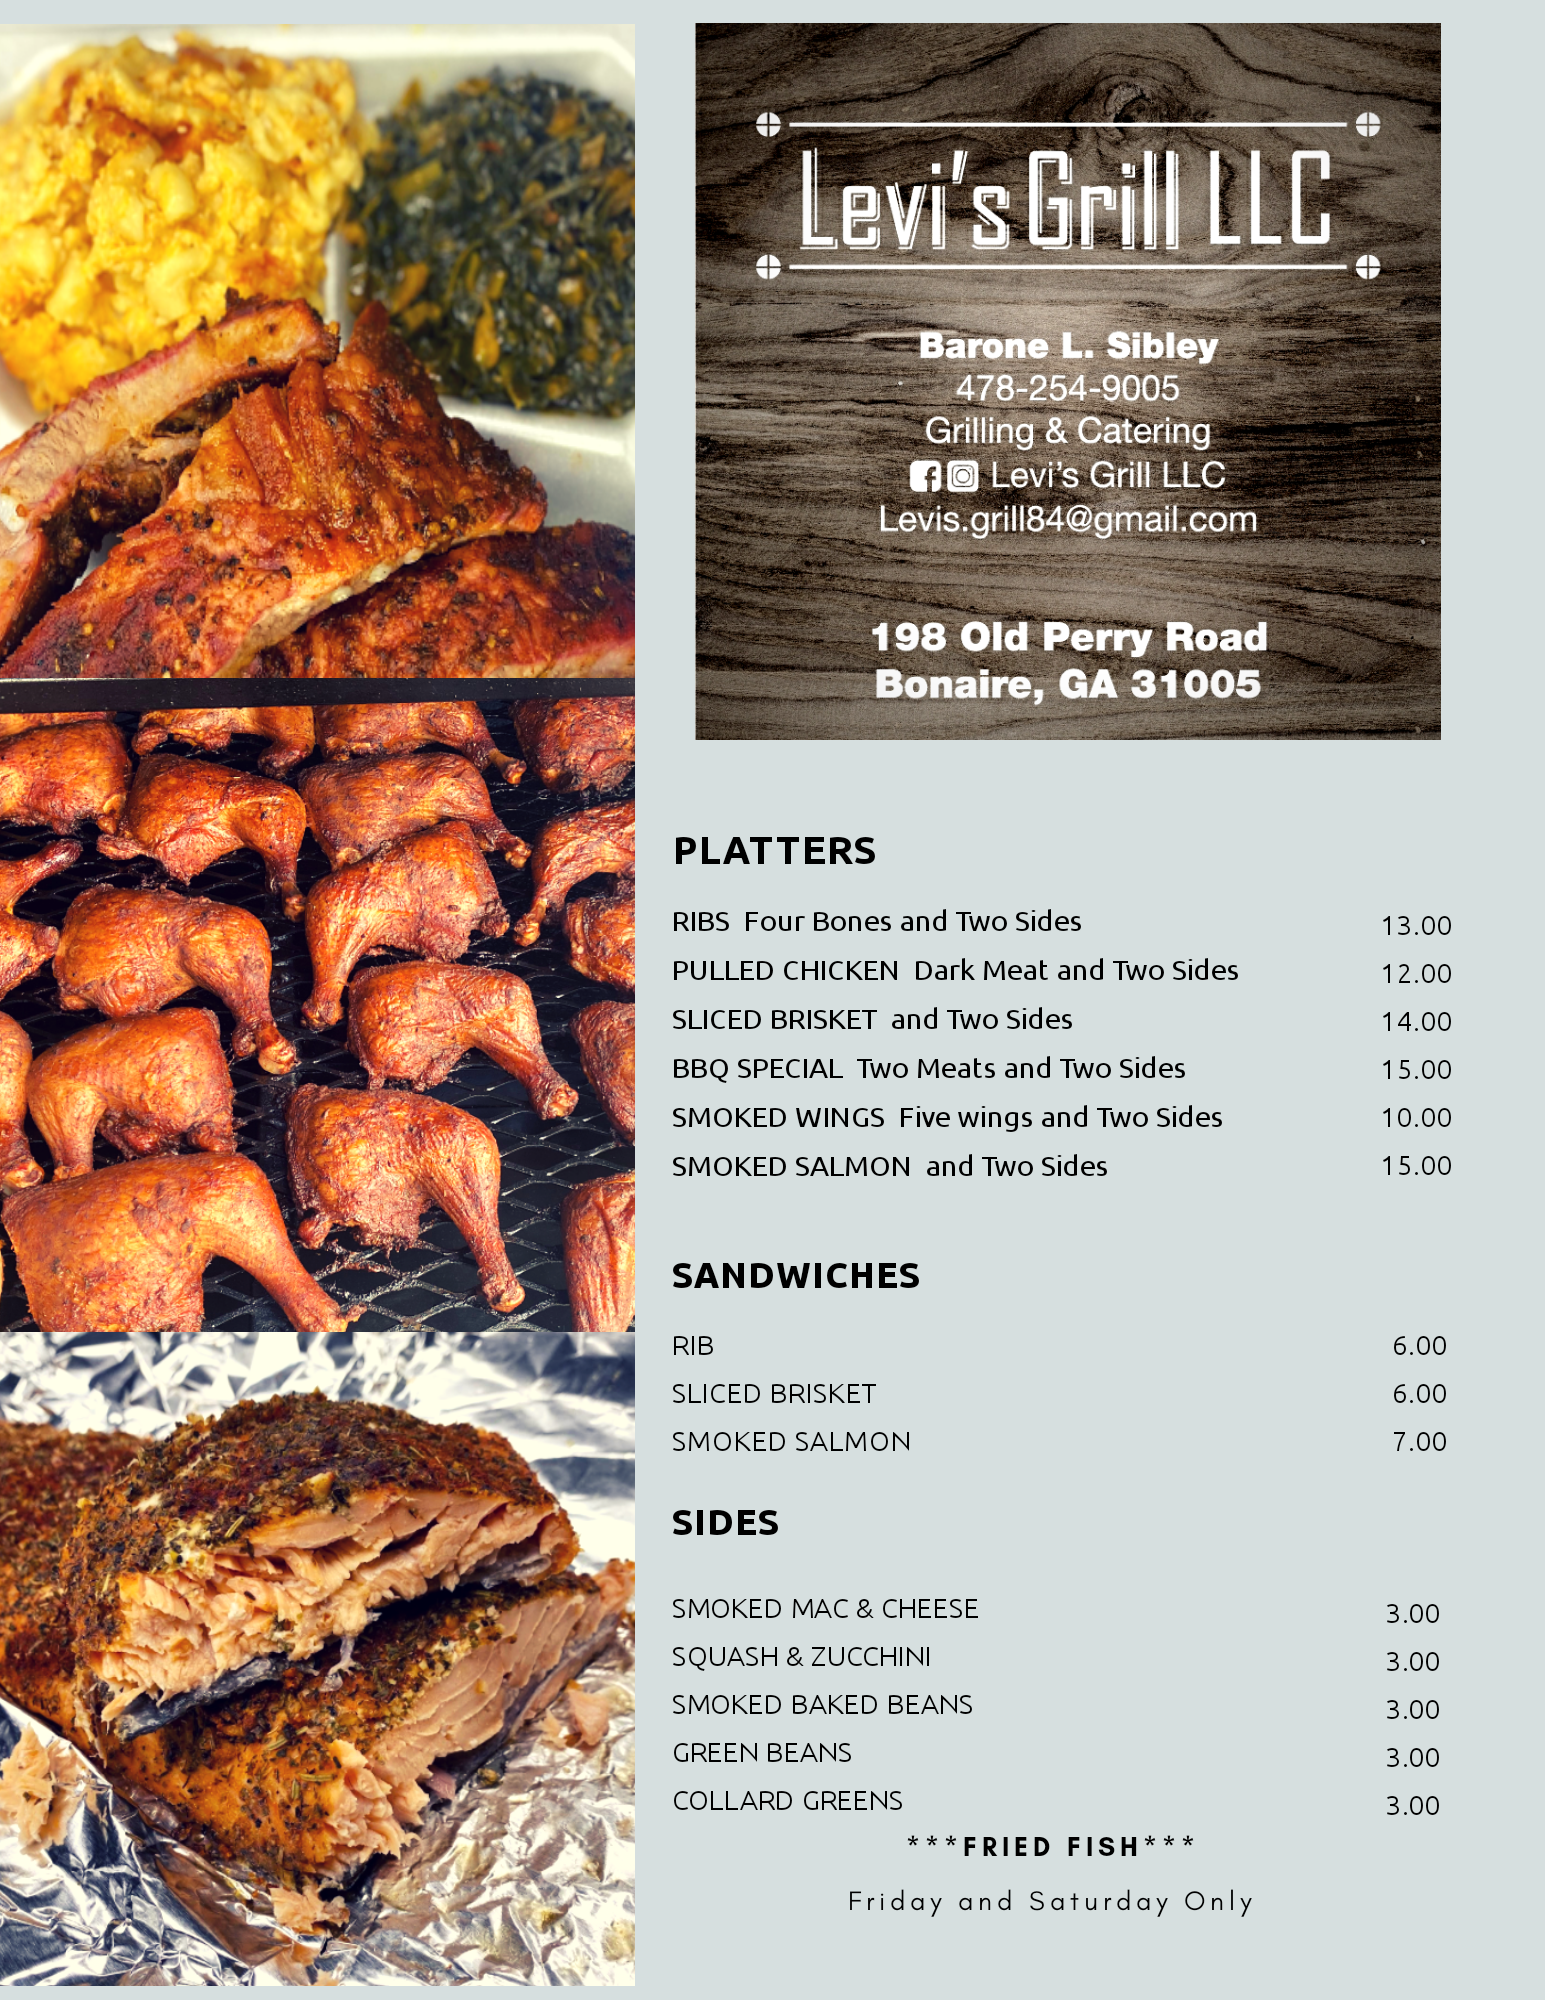 Levi's Grill LLC 198 Old Perry Rd, Bonaire